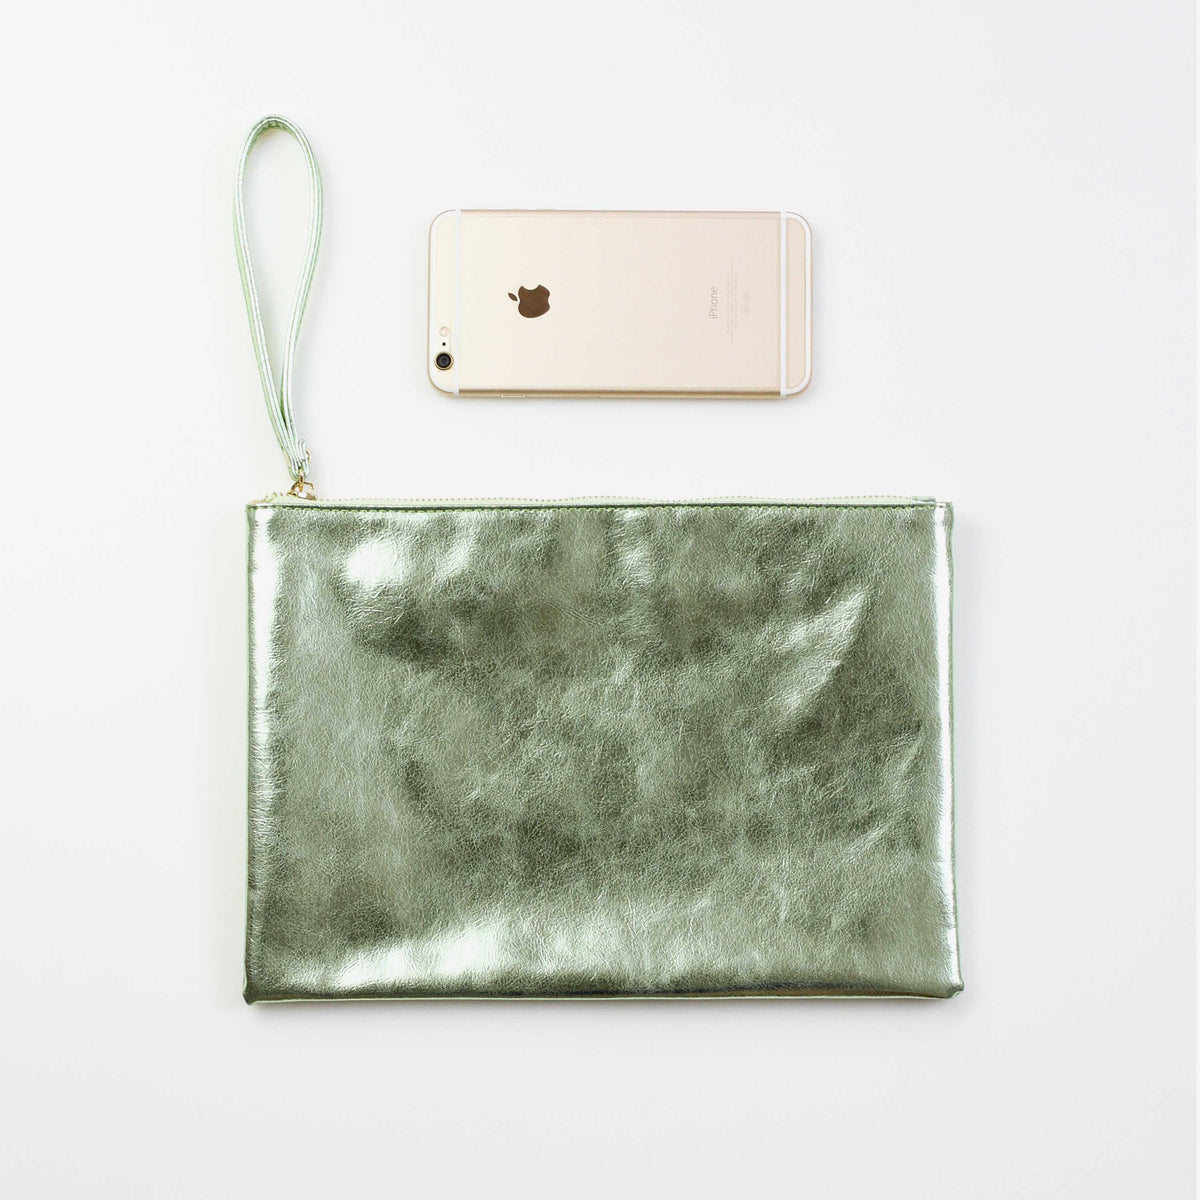 "Metallic Wristlet Handbag Clutch Bag Purse 11.2""*7.78""-3 Colors - worthtryit.com"